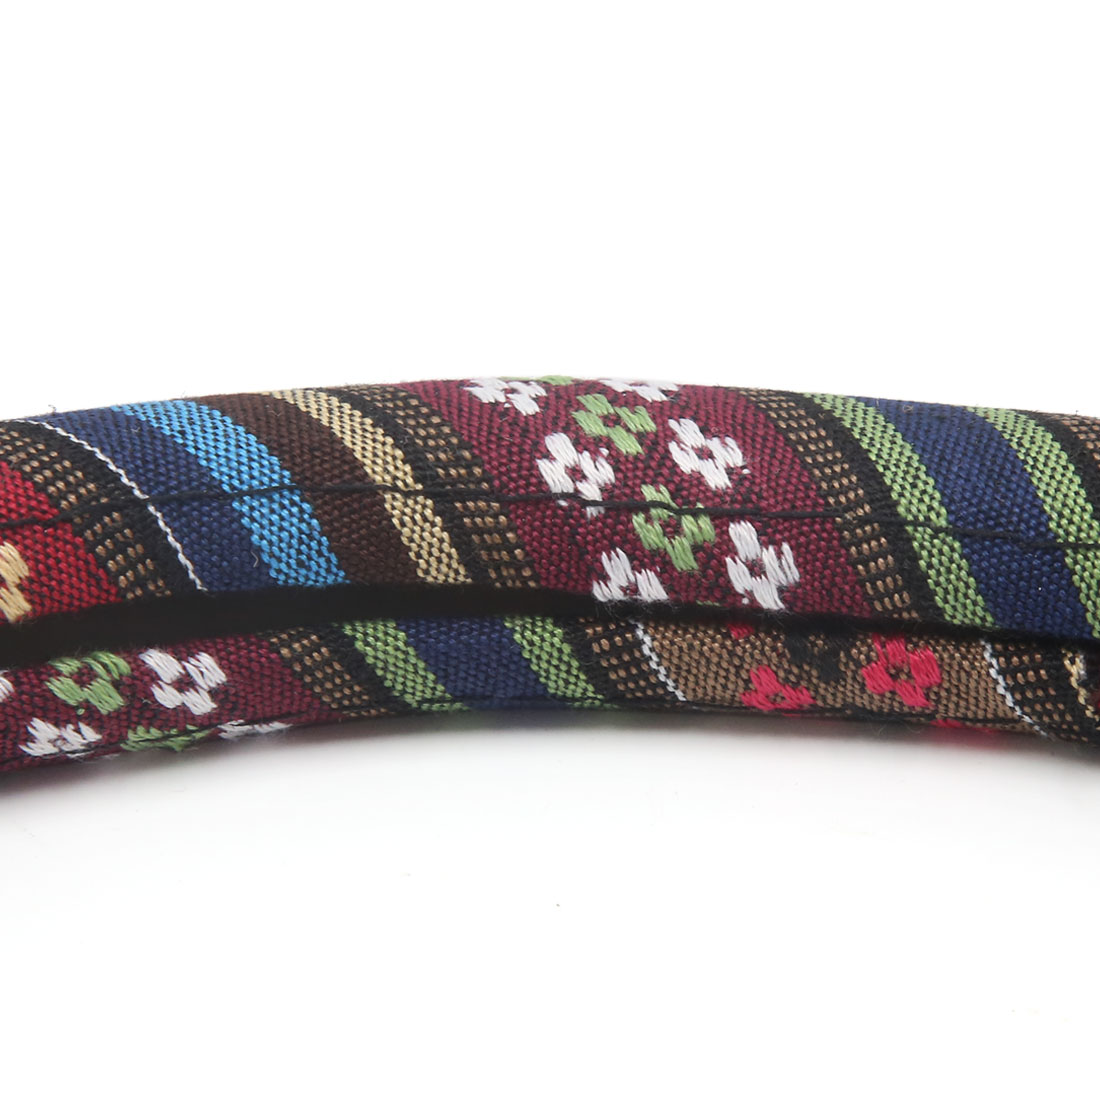 L Size Ethnic Style Coarse Flax Cloth Car Steering Wheel Cover Protector-B - image 1 de 3